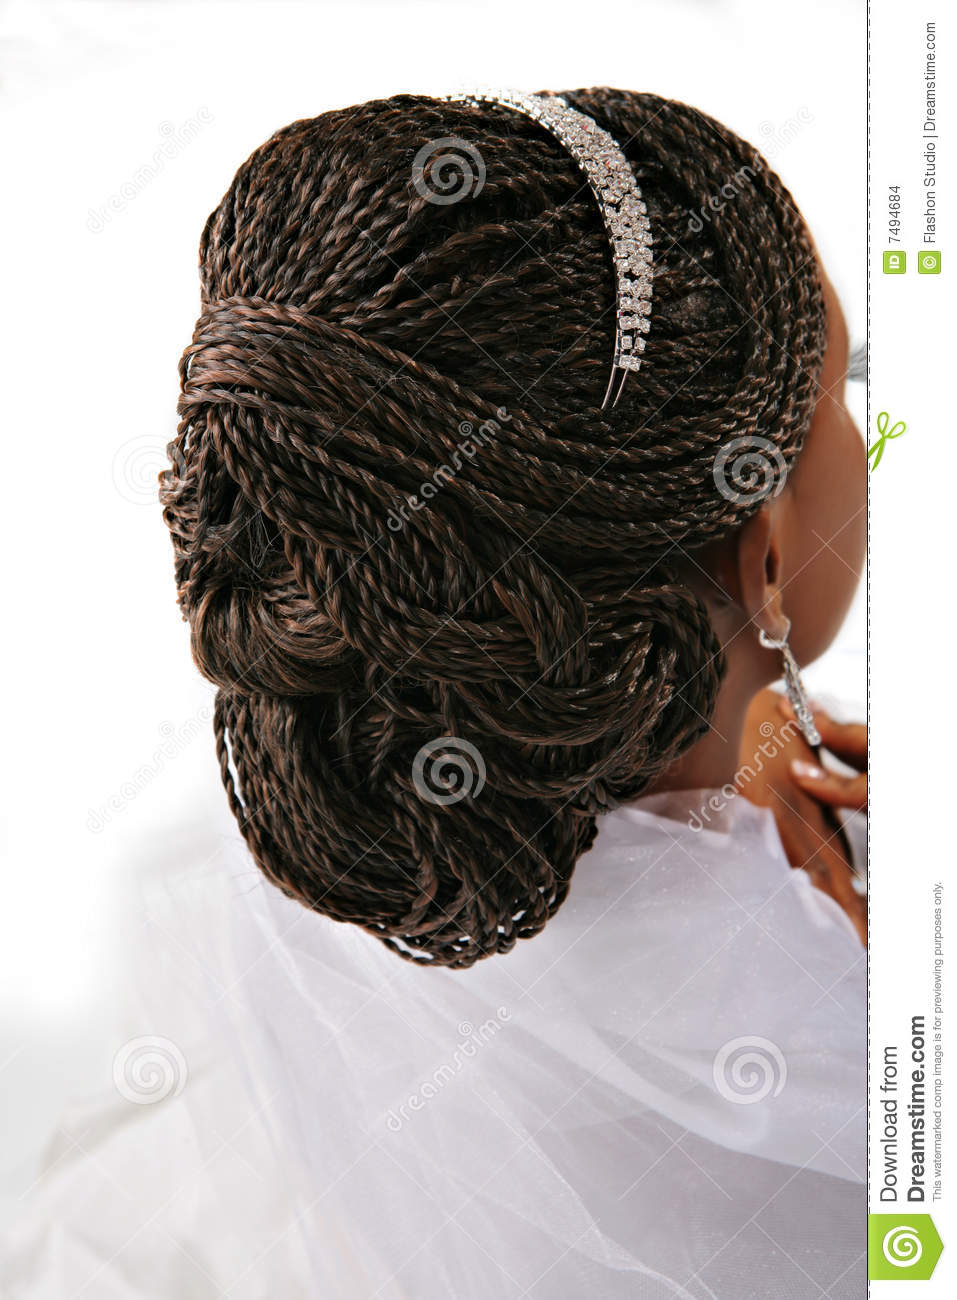 Fancy Female Hair Braid Closeup Stock Photo Image Of